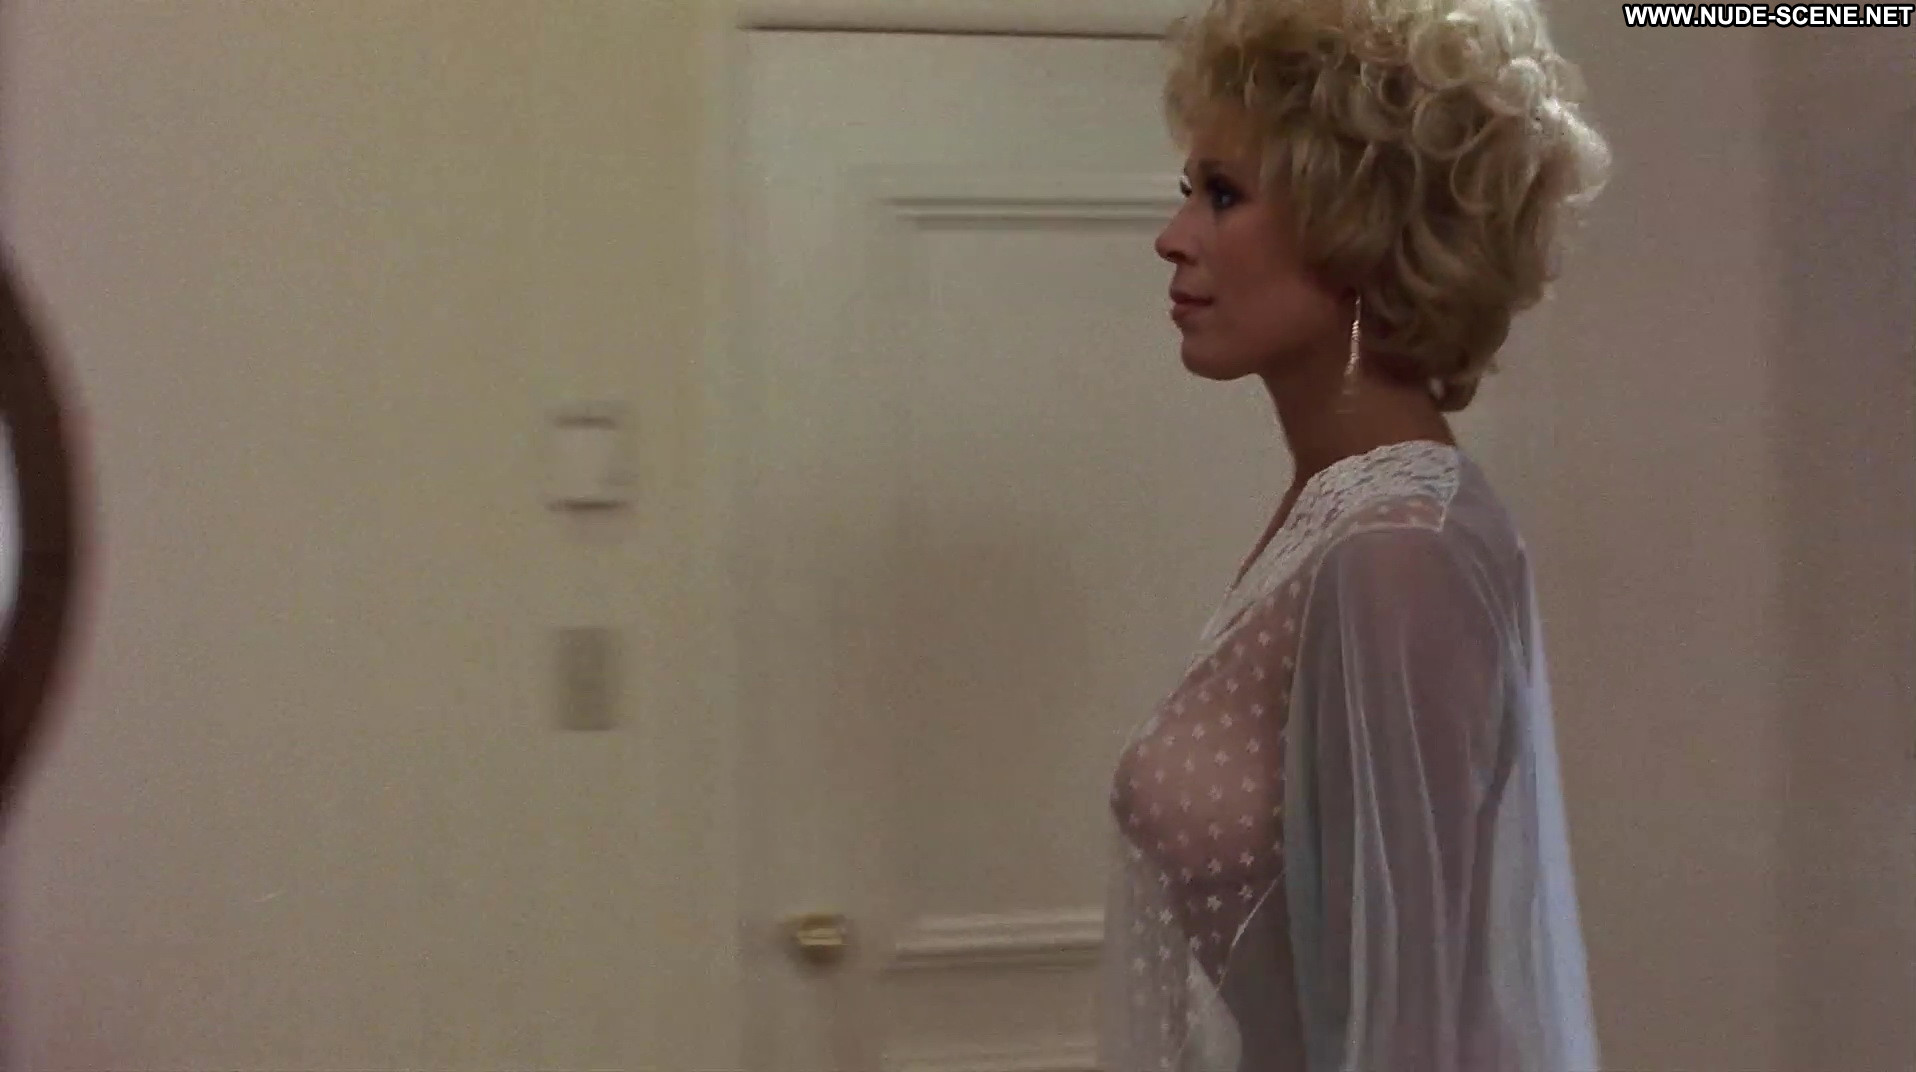 Simply Leslie easterbrook naked pics thanks